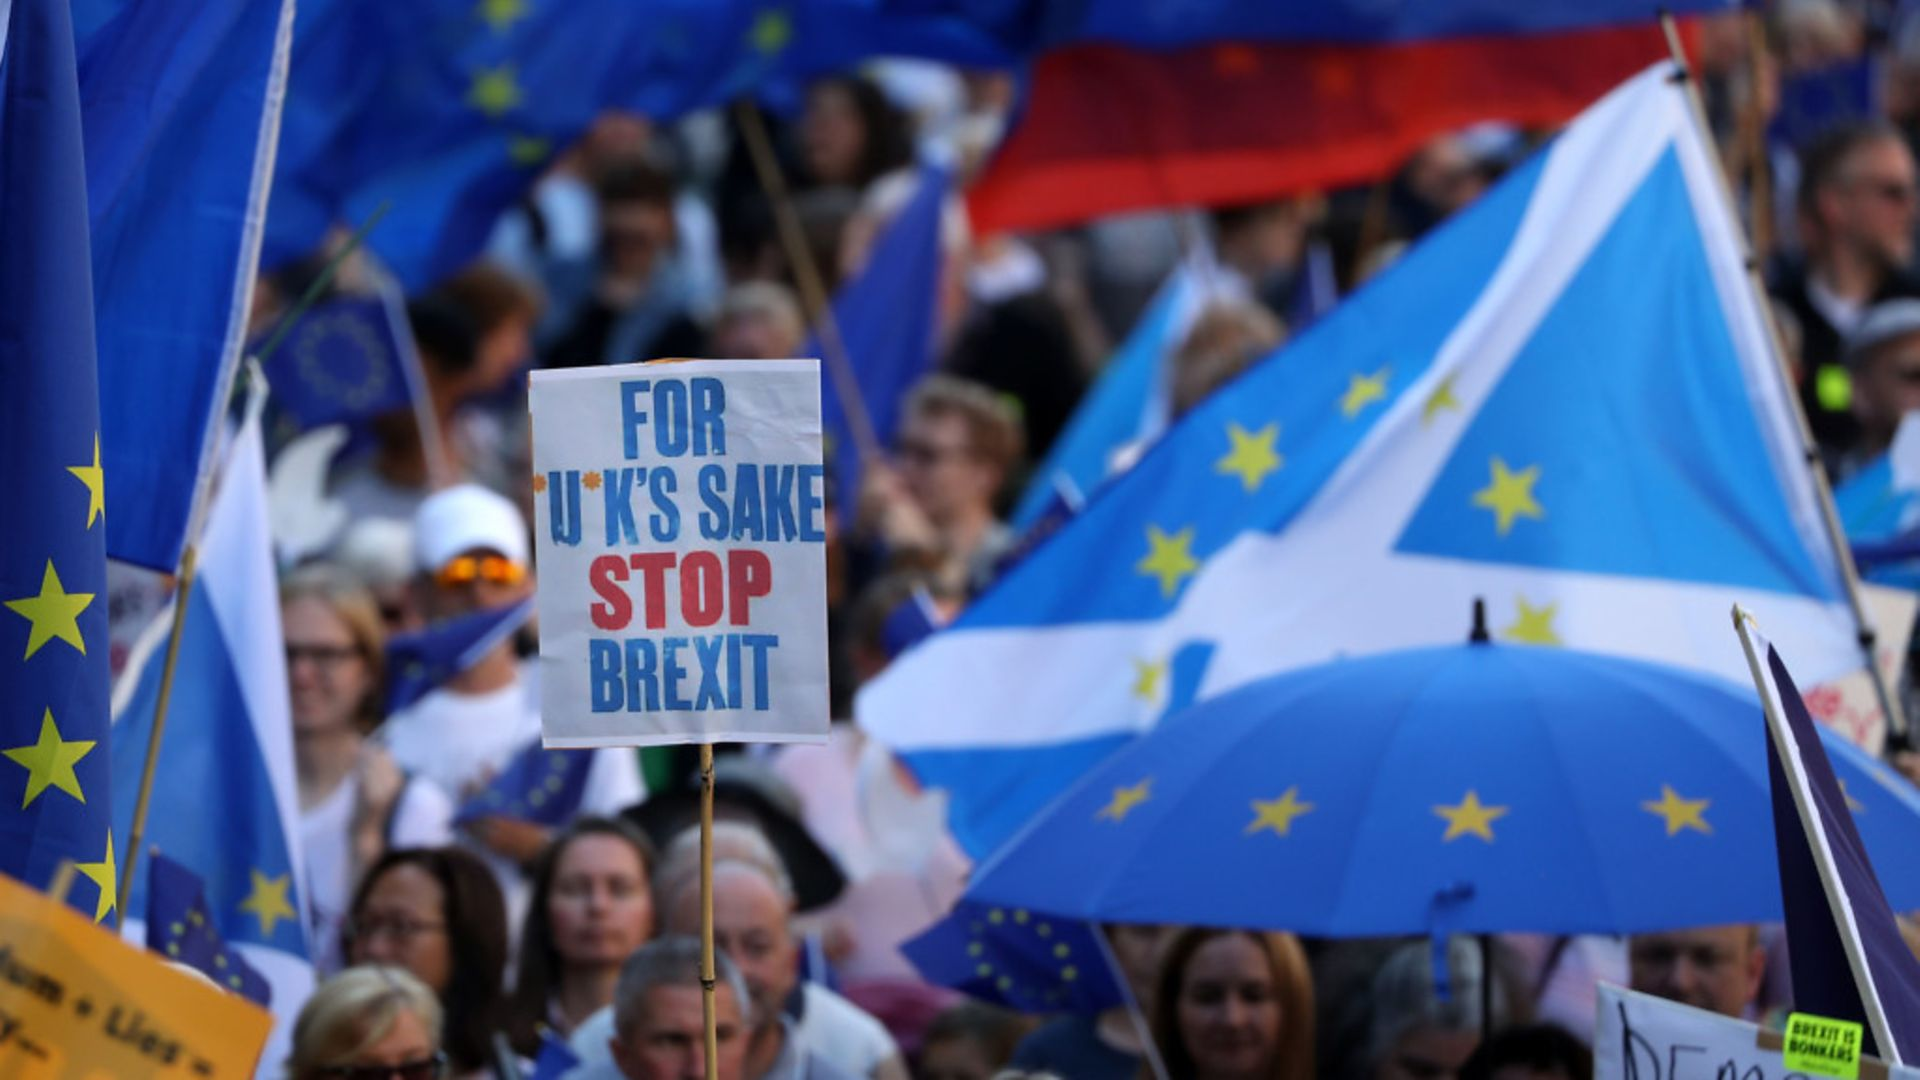 Protestors during the March to Remain in the EU in Edinburgh - Credit: PA